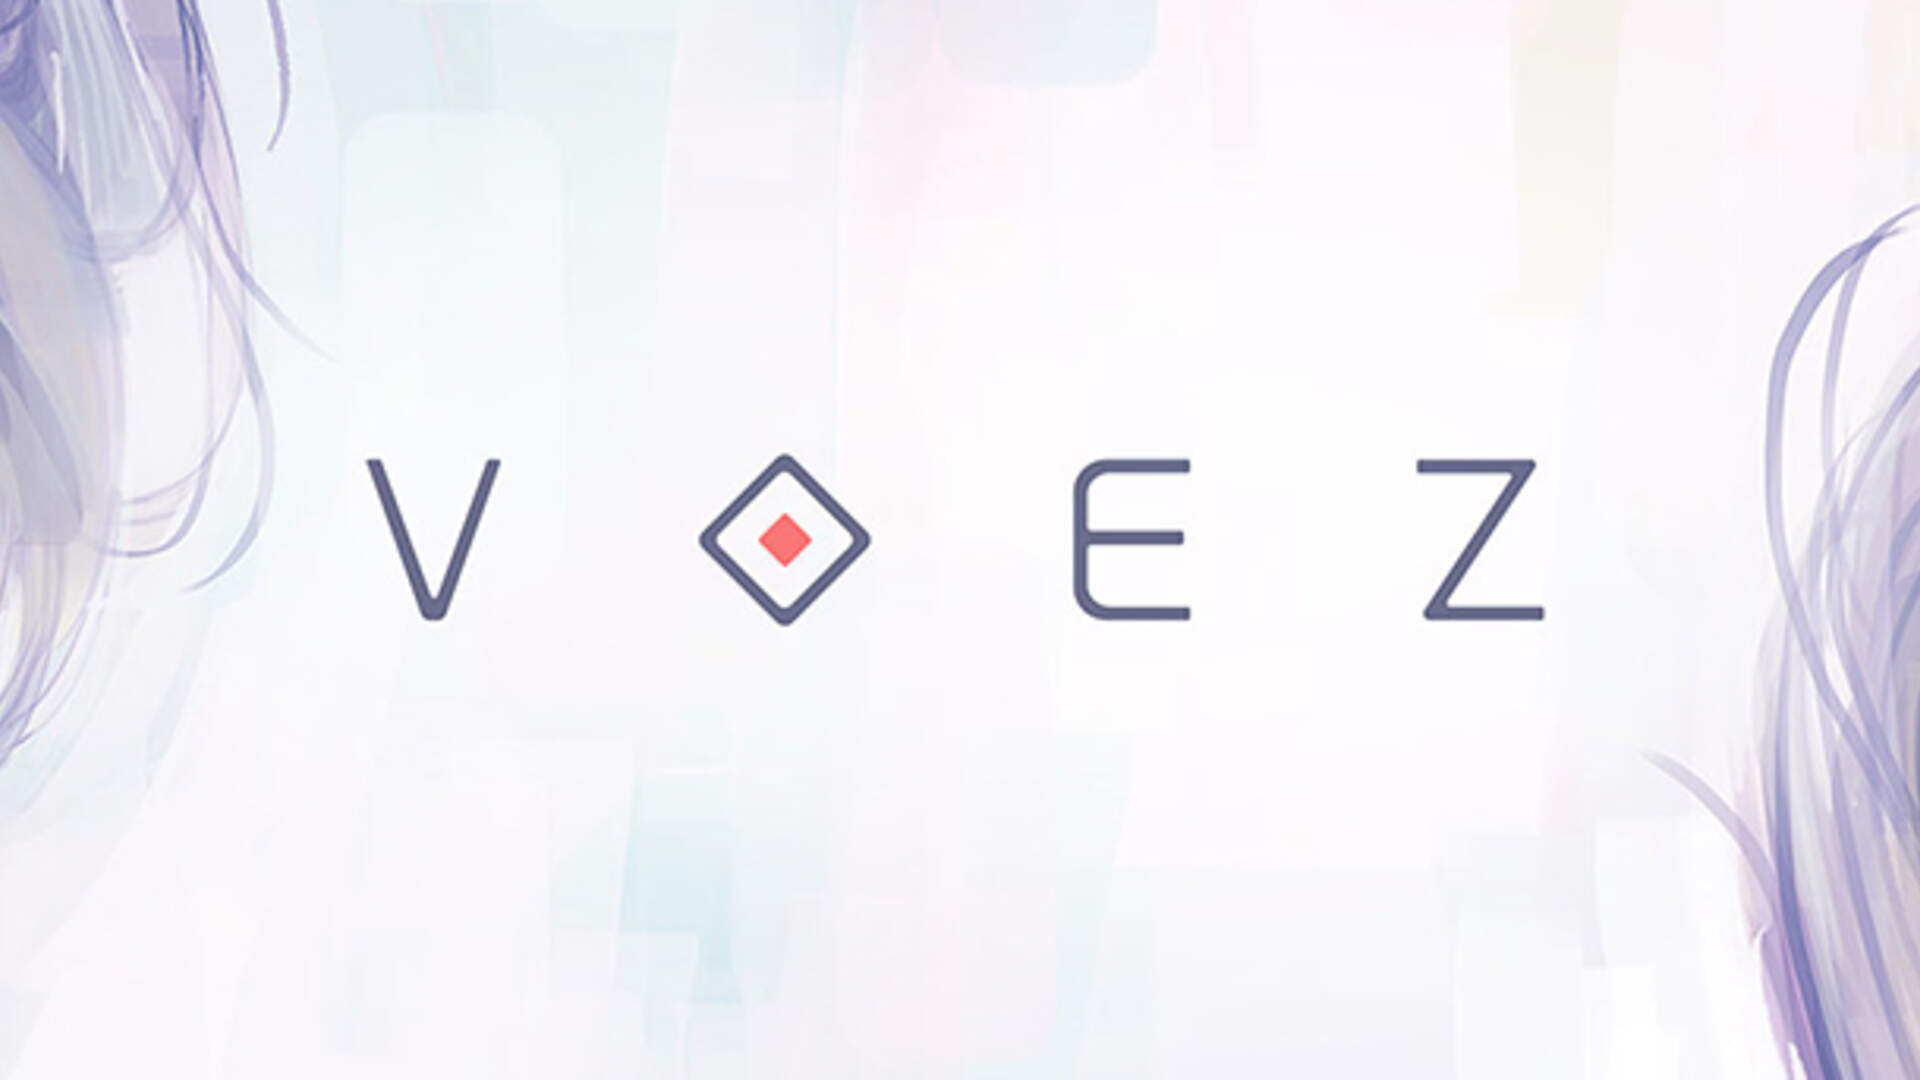 Voez Signals the Switch's Rhythm Game Potential